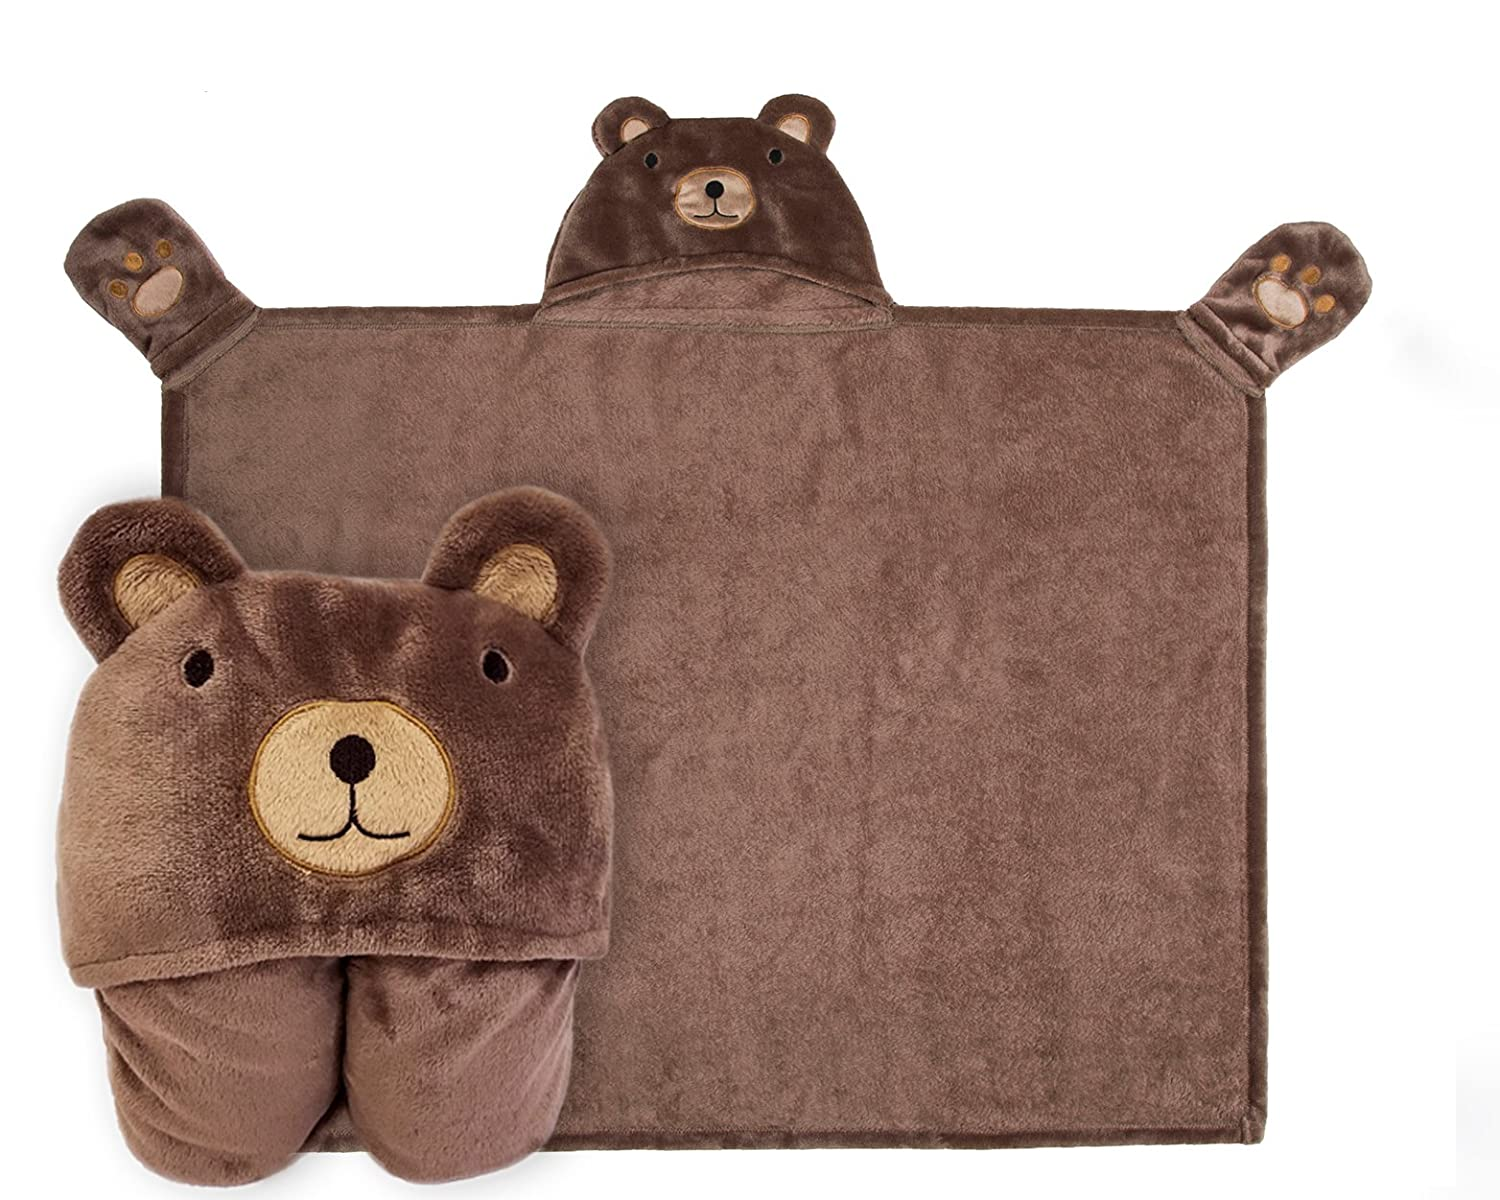 Kids Hooded Blanket,Animal Embroidered Bear Flannel Bath Throw,76x101cm